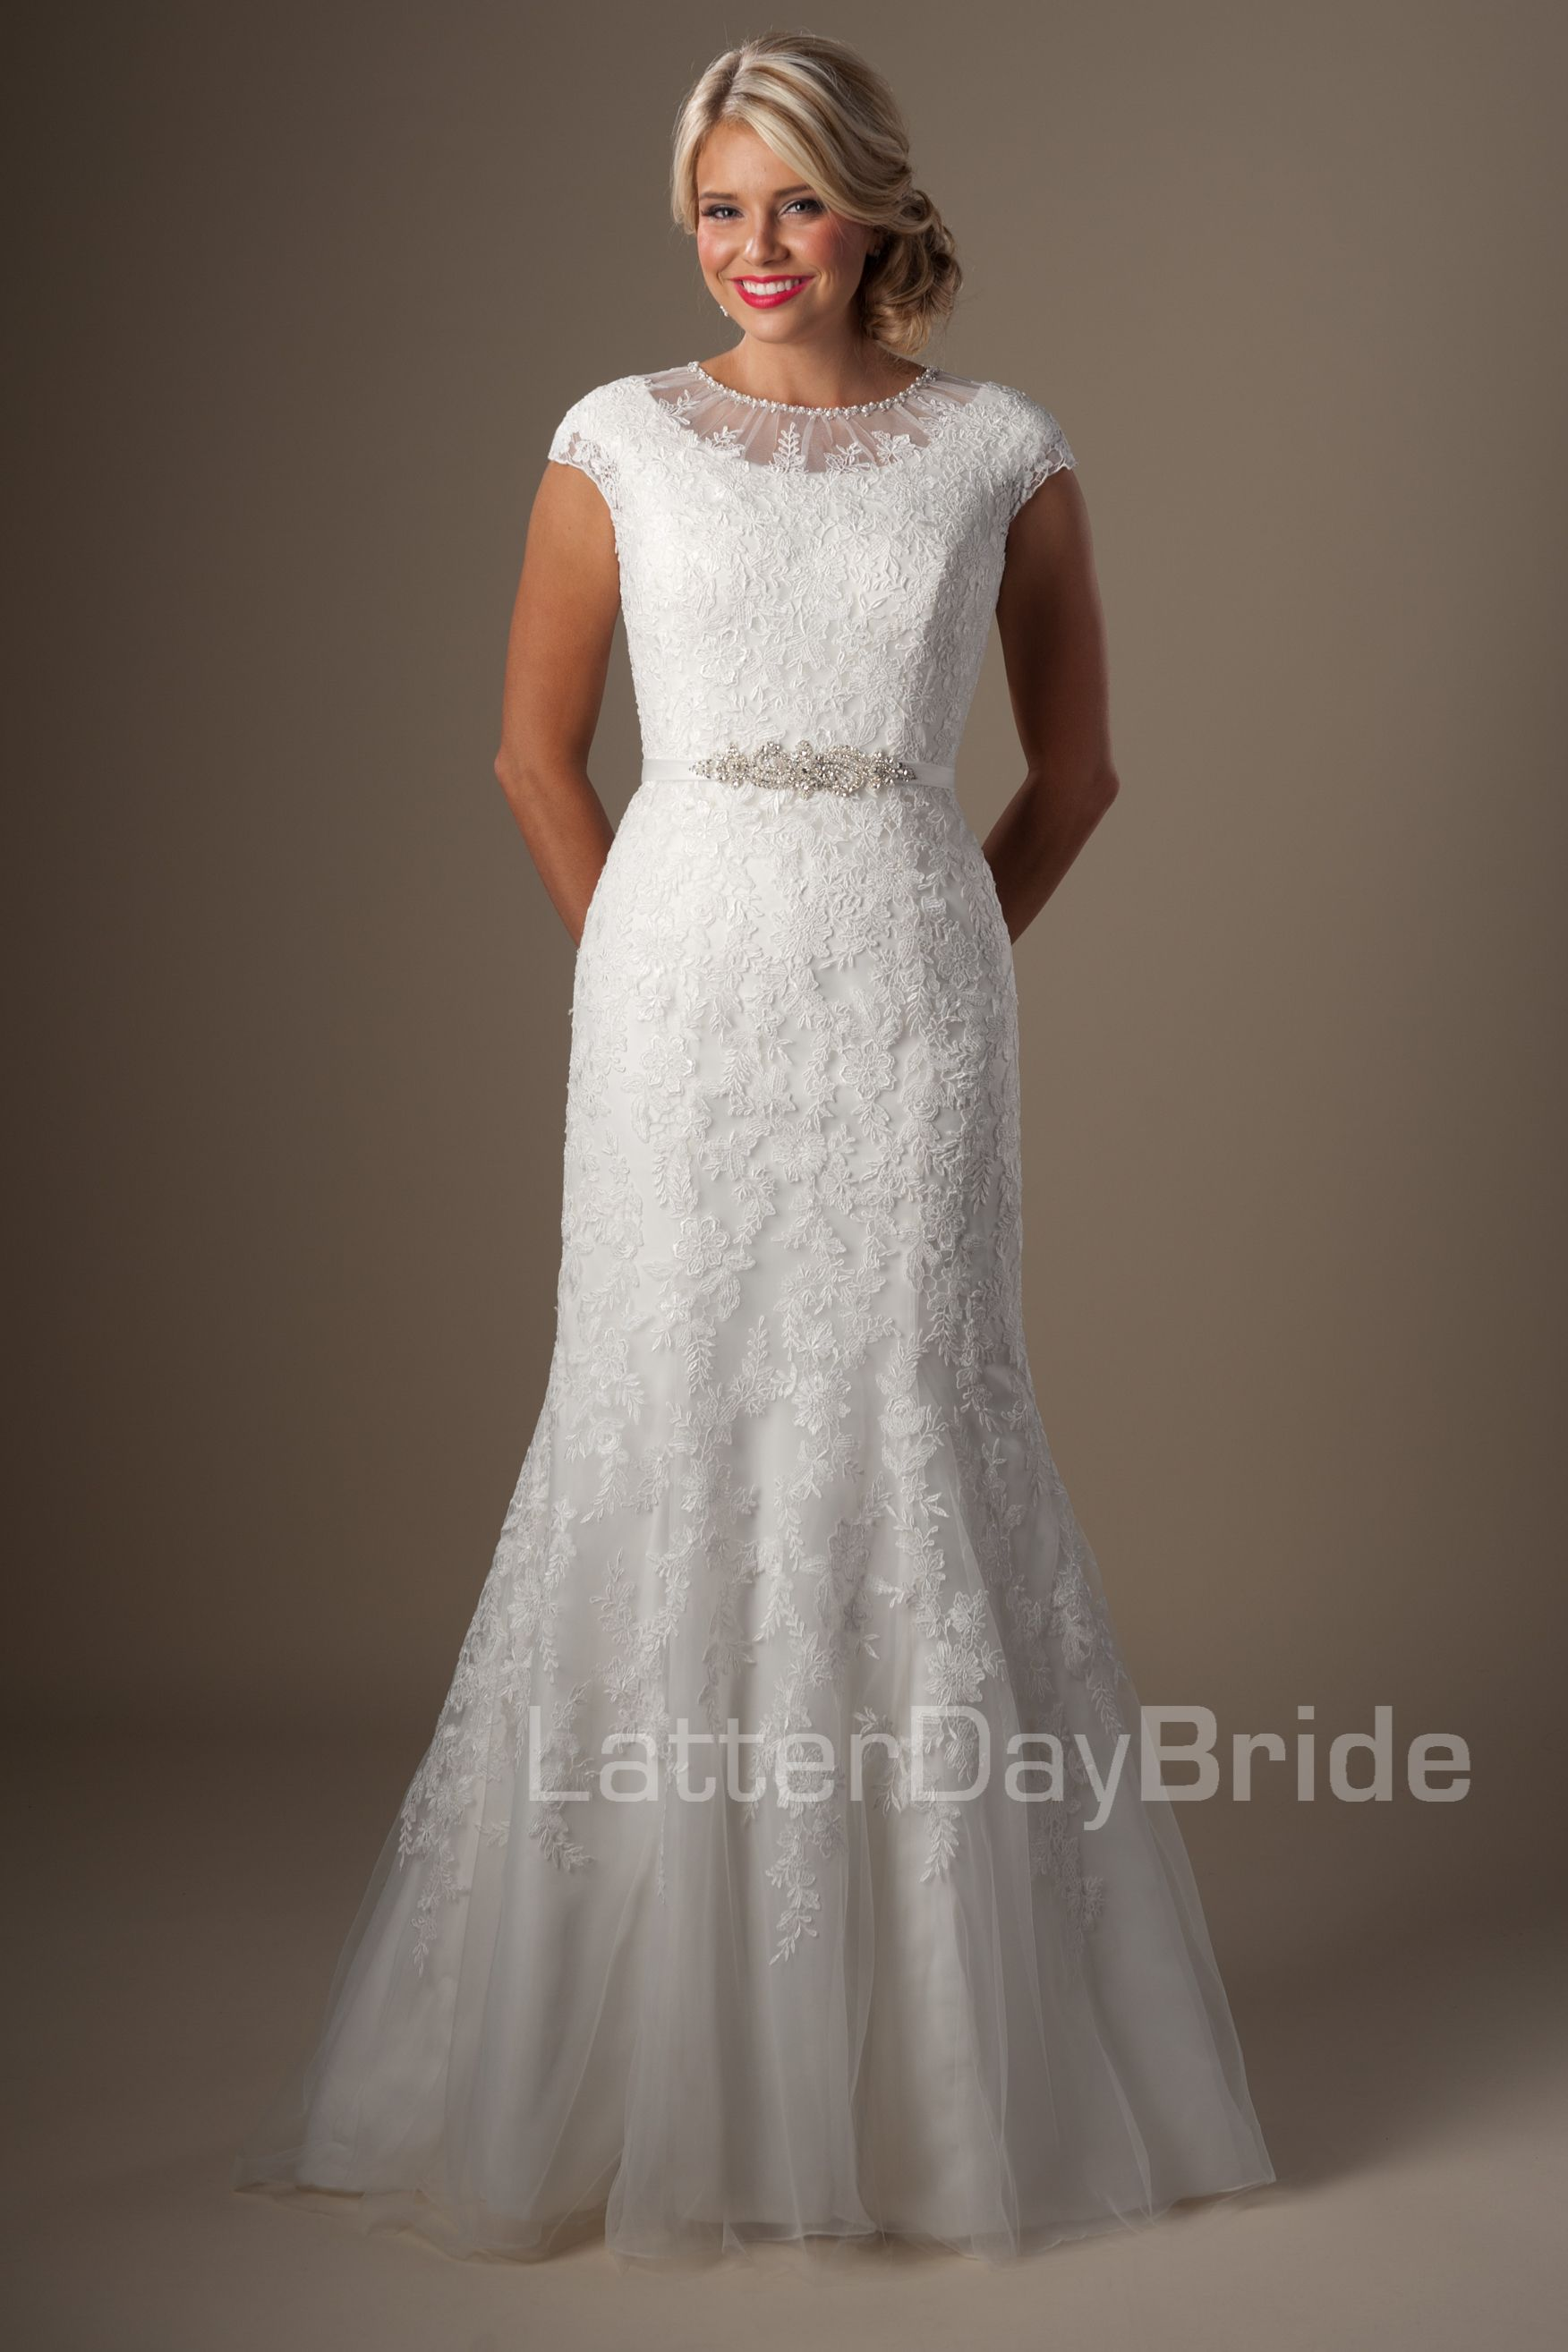 Modest Wedding Dresses : Olympia. Latter Day Bride, Gateway Bridal ...